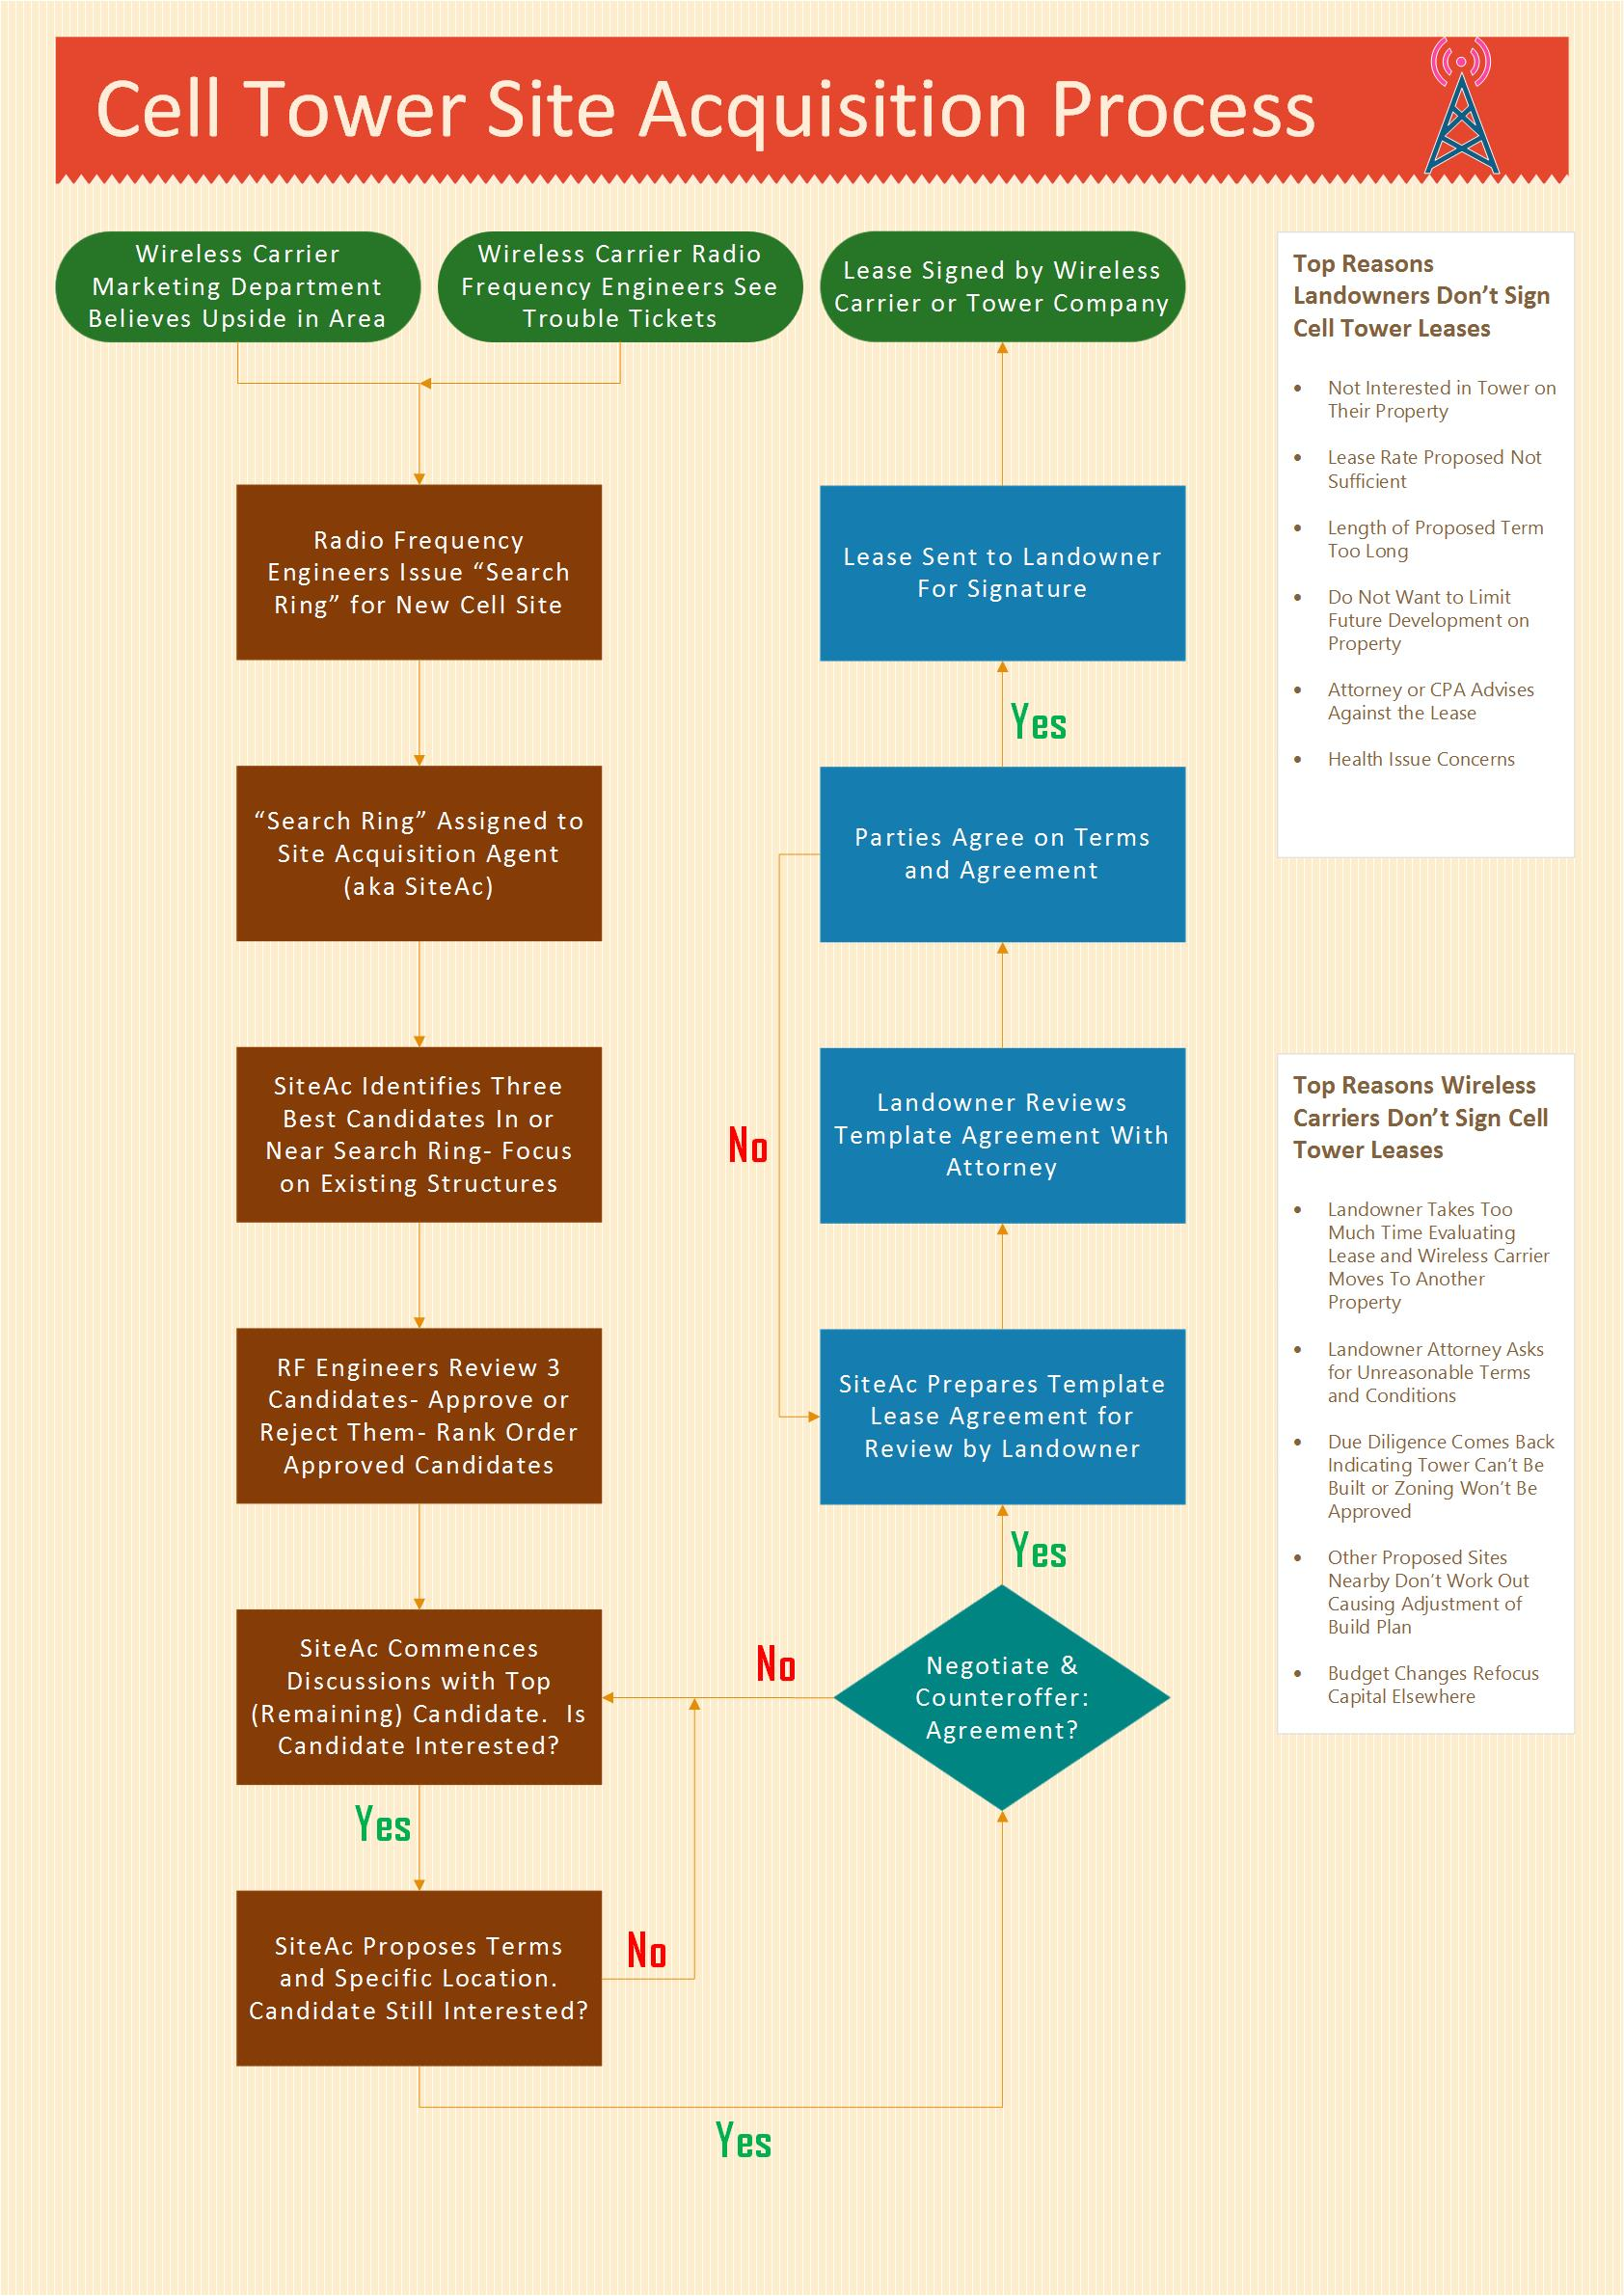 Cell Tower Lease Site Acquisition Process Flow-Chart